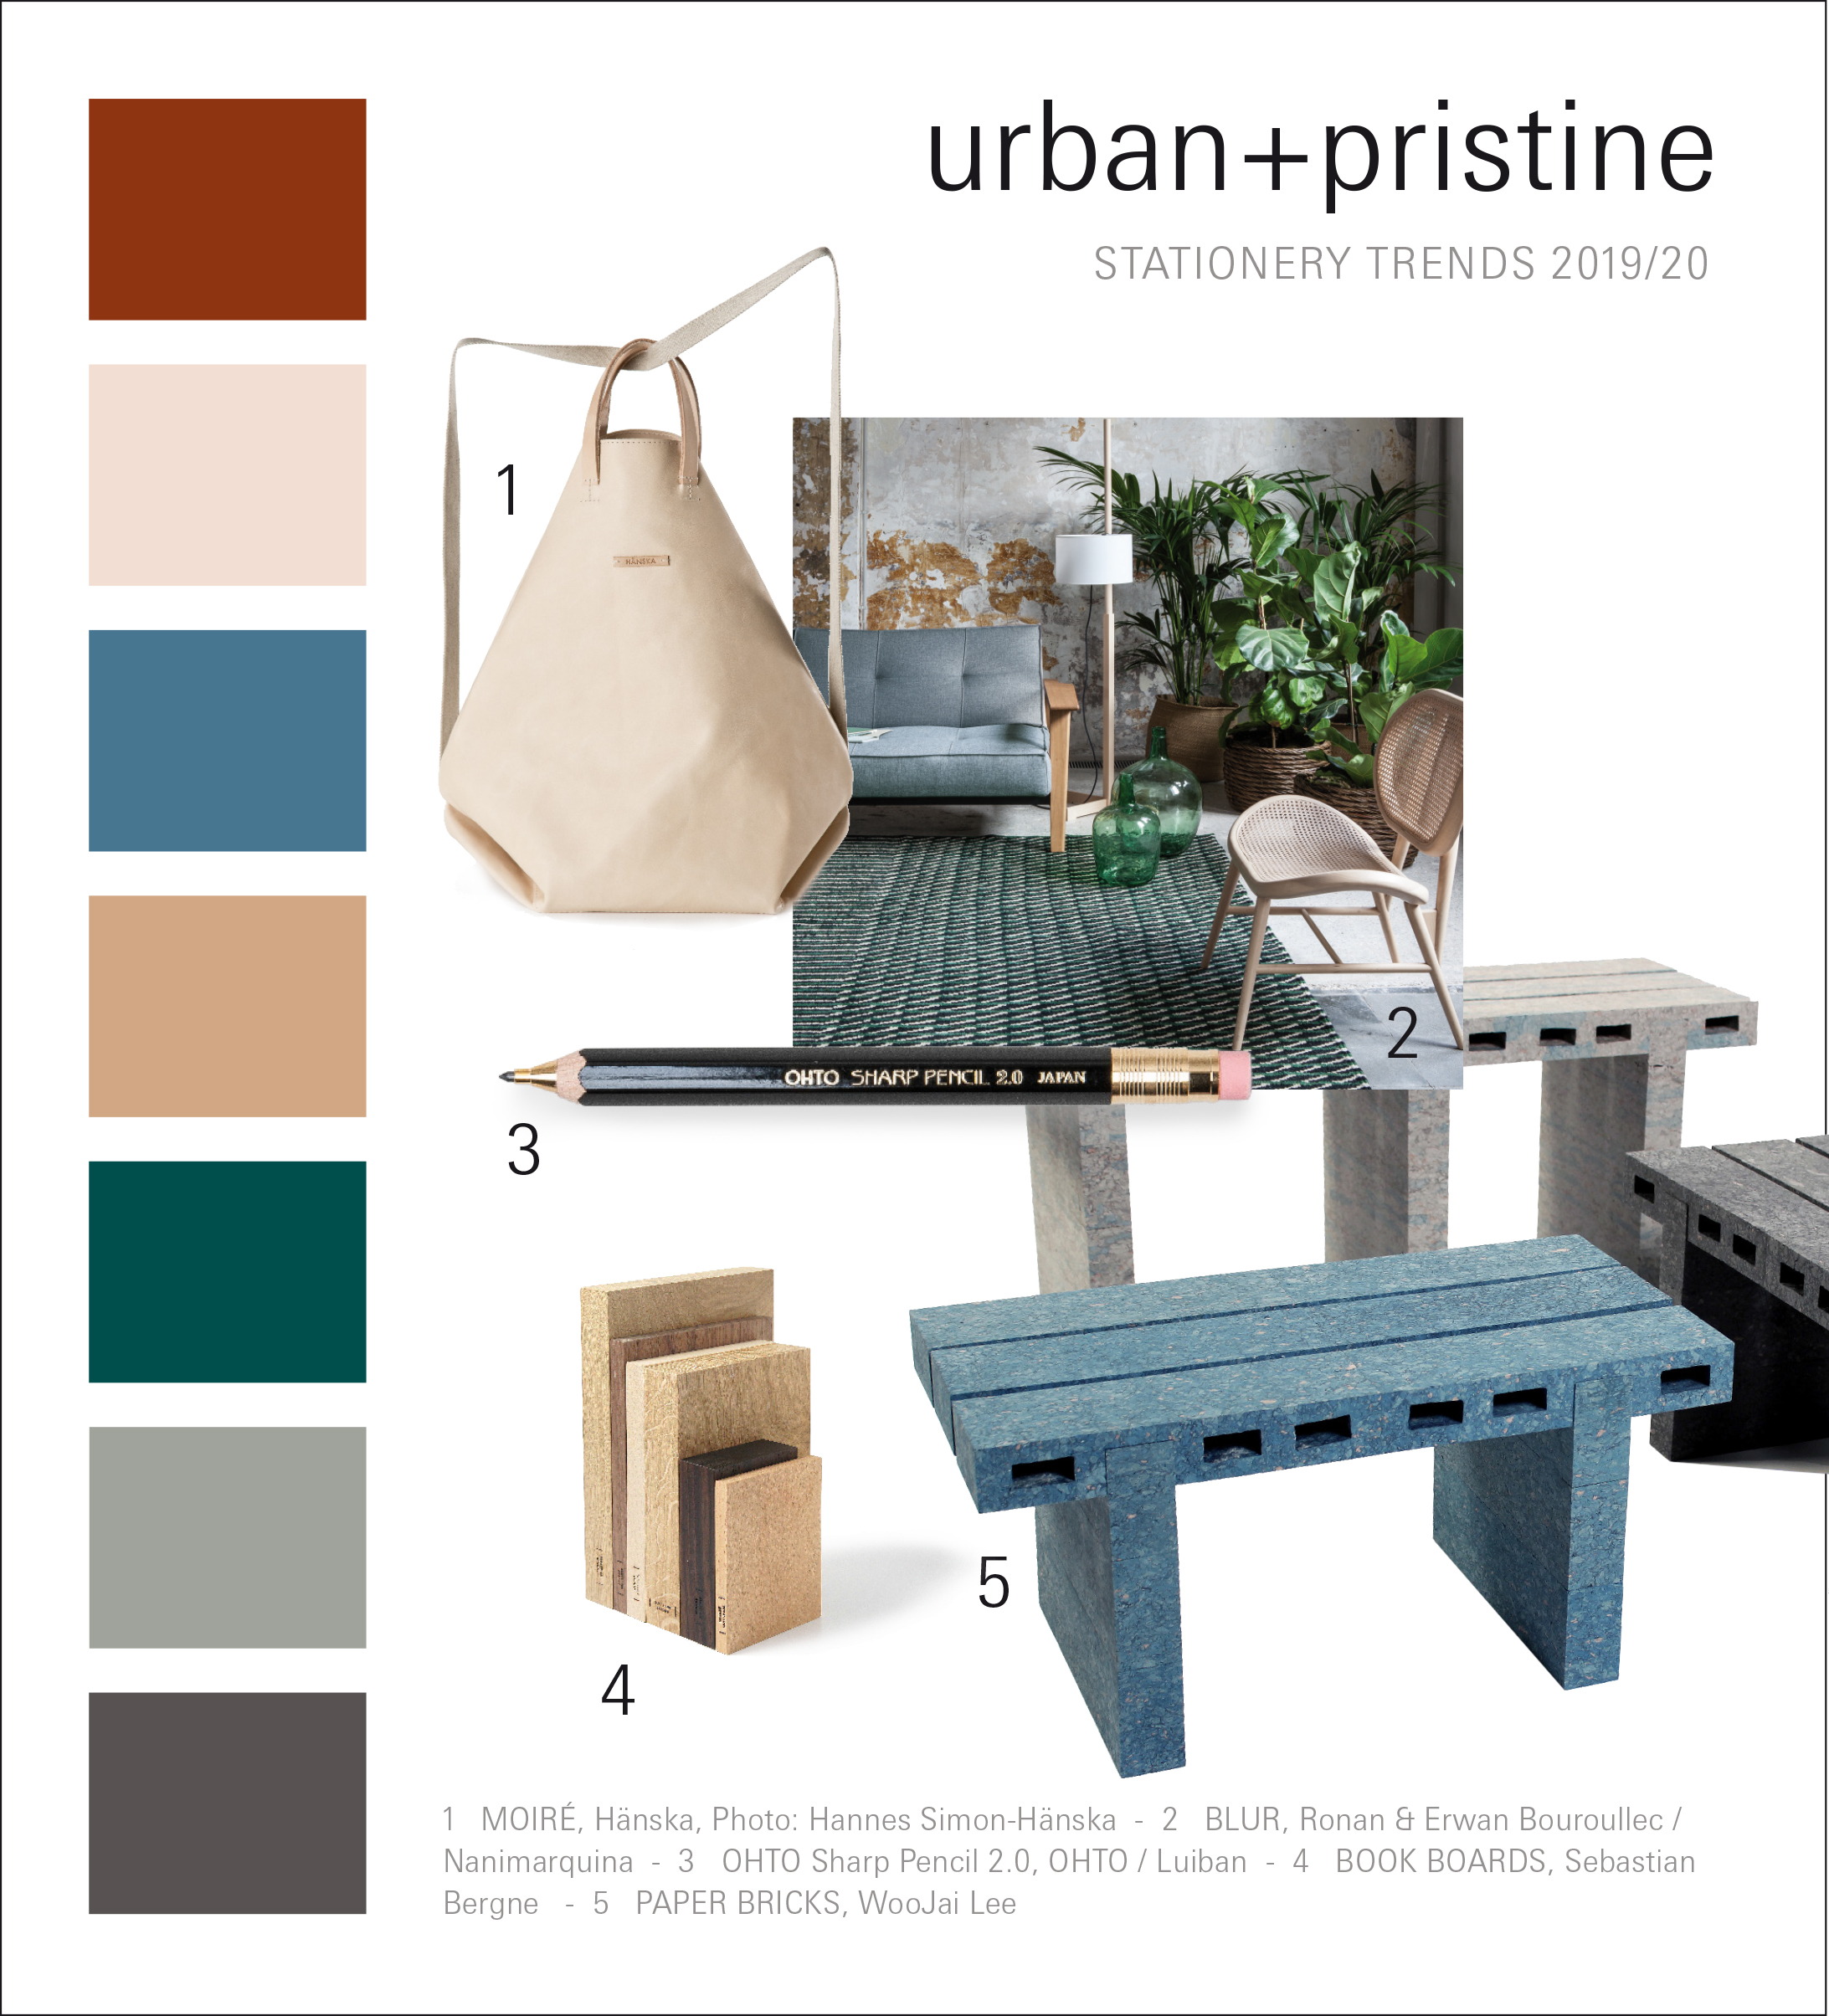 Paperworld Trends 2019/20: urban + pristine